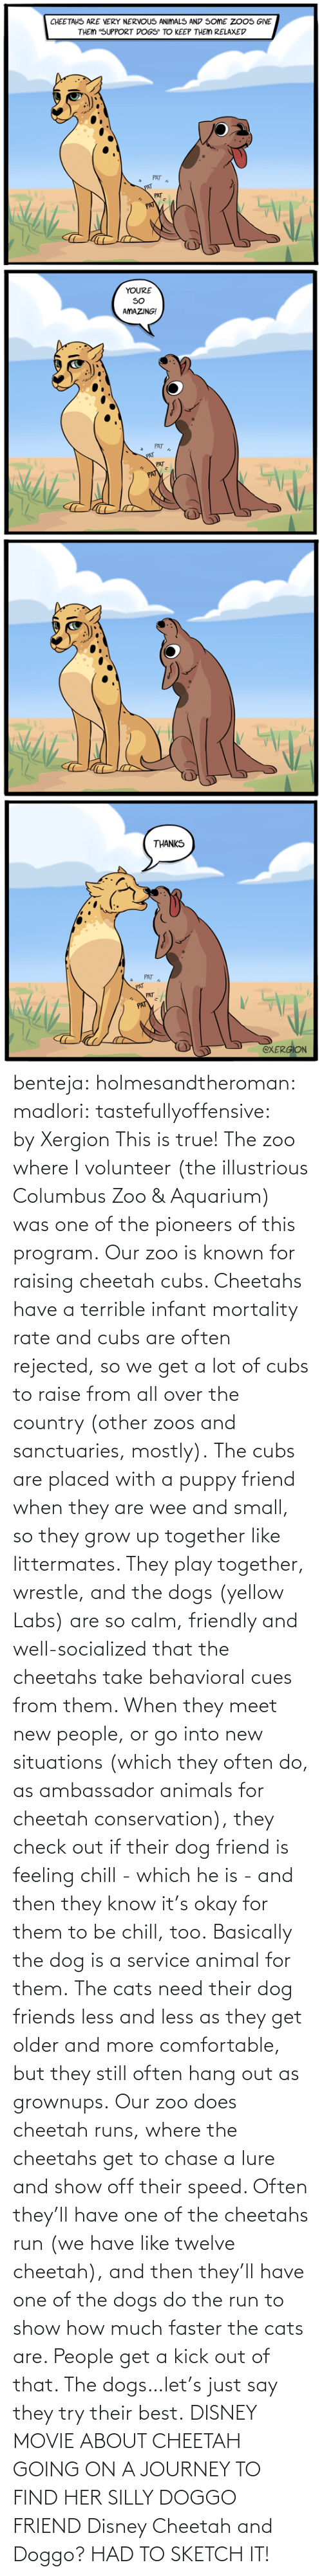 Basically: benteja:  holmesandtheroman:  madlori:  tastefullyoffensive: by Xergion This is true! The zoo where I volunteer (the illustrious Columbus Zoo & Aquarium) was one of the pioneers of this program. Our zoo is known for raising cheetah cubs. Cheetahs have a terrible infant mortality rate and cubs are often rejected, so we get a lot of cubs to raise from all over the country (other zoos and sanctuaries, mostly). The cubs are placed with a puppy friend when they are wee and small, so they grow up together like littermates. They play together, wrestle, and the dogs (yellow Labs) are so calm, friendly and well-socialized that the cheetahs take behavioral cues from them. When they meet new people, or go into new situations (which they often do, as ambassador animals for cheetah conservation), they check out if their dog friend is feeling chill - which he is - and then they know it's okay for them to be chill, too. Basically the dog is a service animal for them. The cats need their dog friends less and less as they get older and more comfortable, but they still often hang out as grownups. Our zoo does cheetah runs, where the cheetahs get to chase a lure and show off their speed. Often they'll have one of the cheetahs run (we have like twelve cheetah), and then they'll have one of the dogs do the run to show how much faster the cats are. People get a kick out of that. The dogs…let's just say they try their best.   DISNEY MOVIE ABOUT CHEETAH GOING ON A JOURNEY TO FIND HER SILLY DOGGO FRIEND  Disney Cheetah and Doggo? HAD TO SKETCH IT!